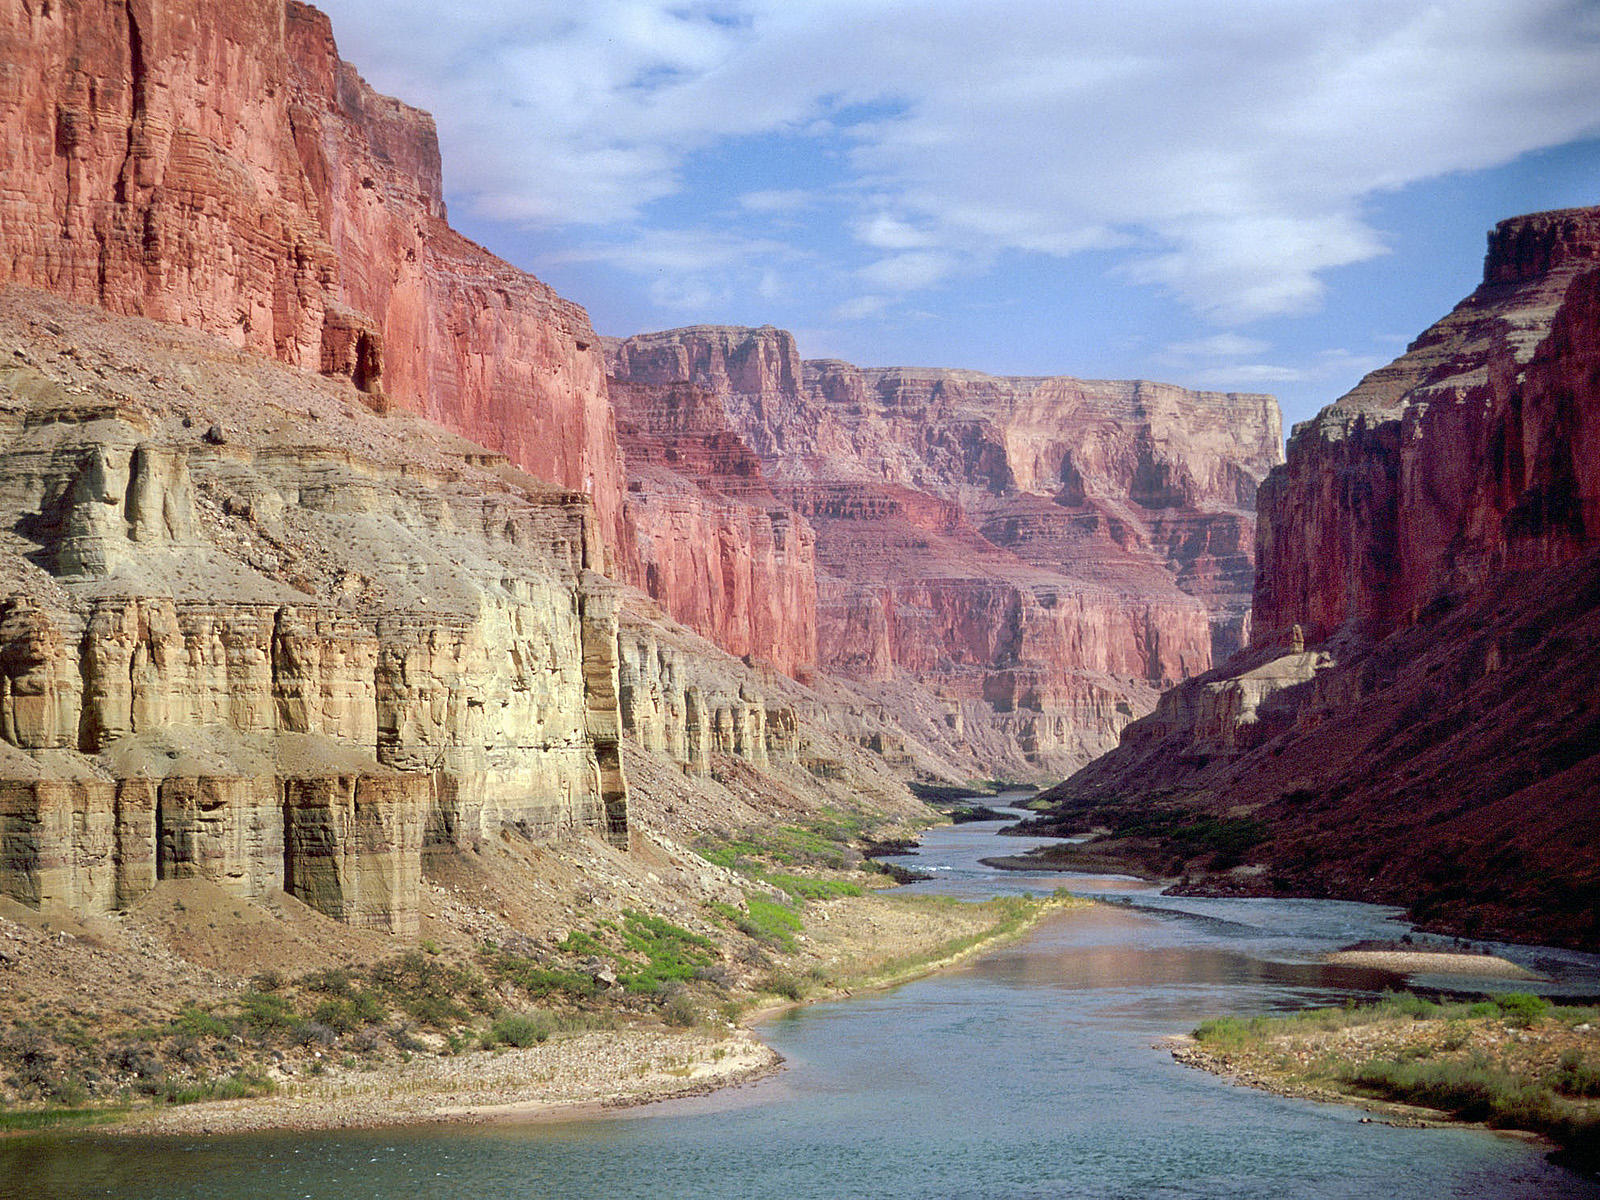 [Image: nankoweap-ruins-colorado-river-grand-canyon-arizona.jpg]